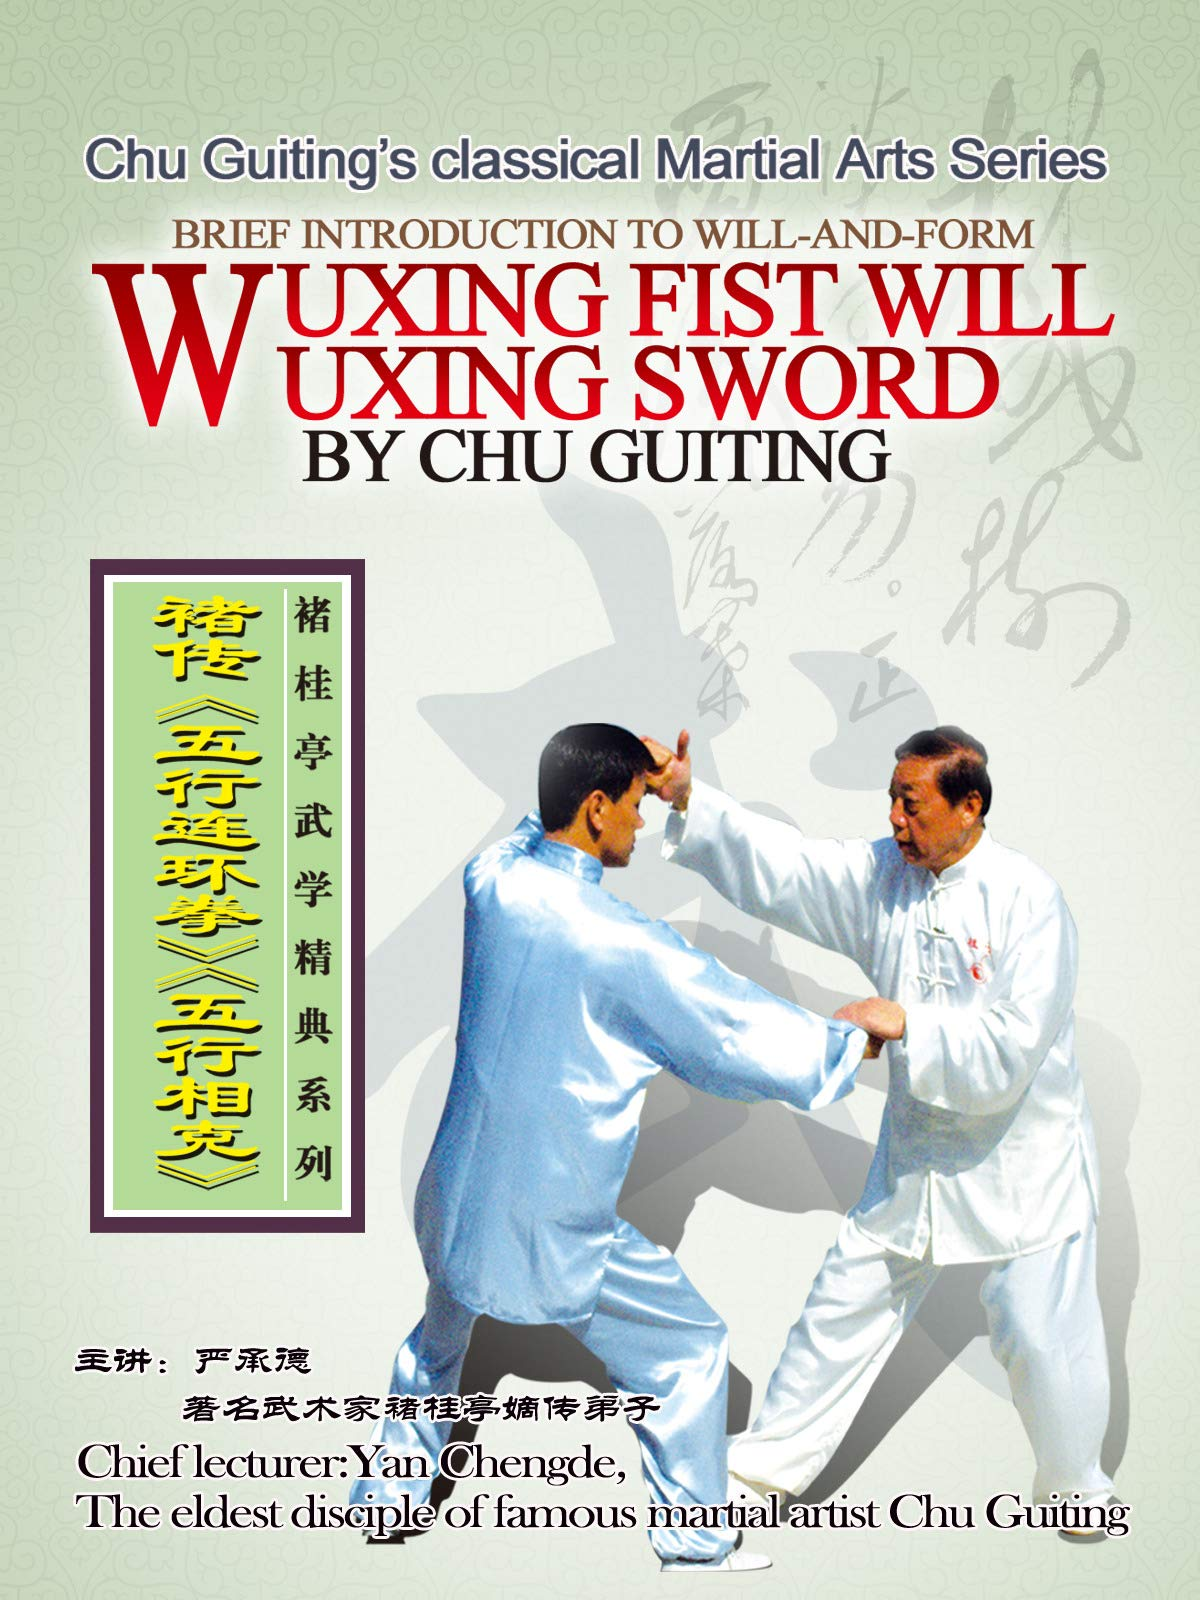 Chu Guiting's classical Martial Arts Series-Brief Introduction to Wuxing Interlinked Fist and Wuxing Counterattack by Chu Guiting